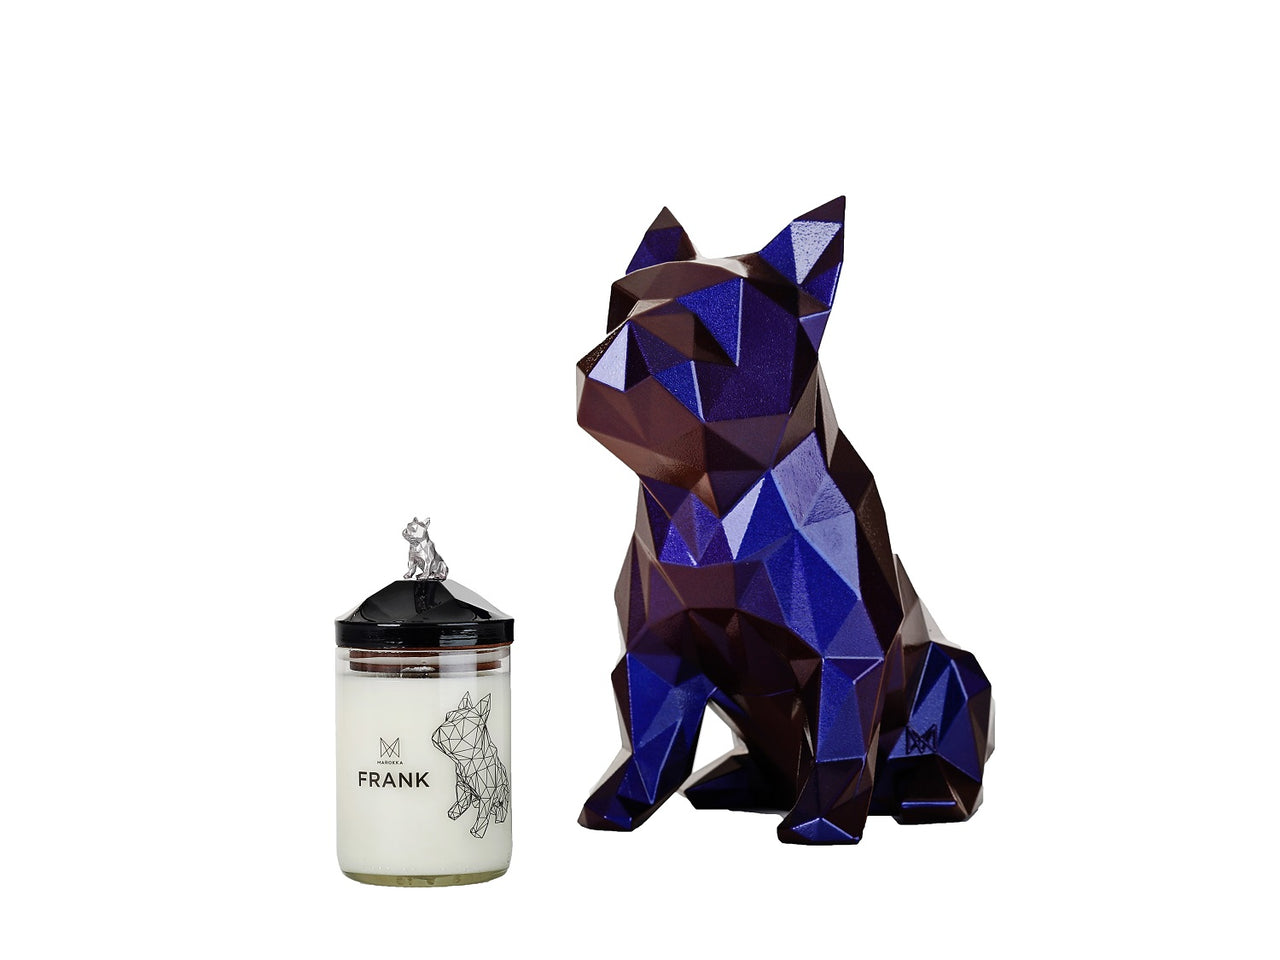 Handmade Natural Wax candle - French Bulldog Design with no charm but flat silver lid